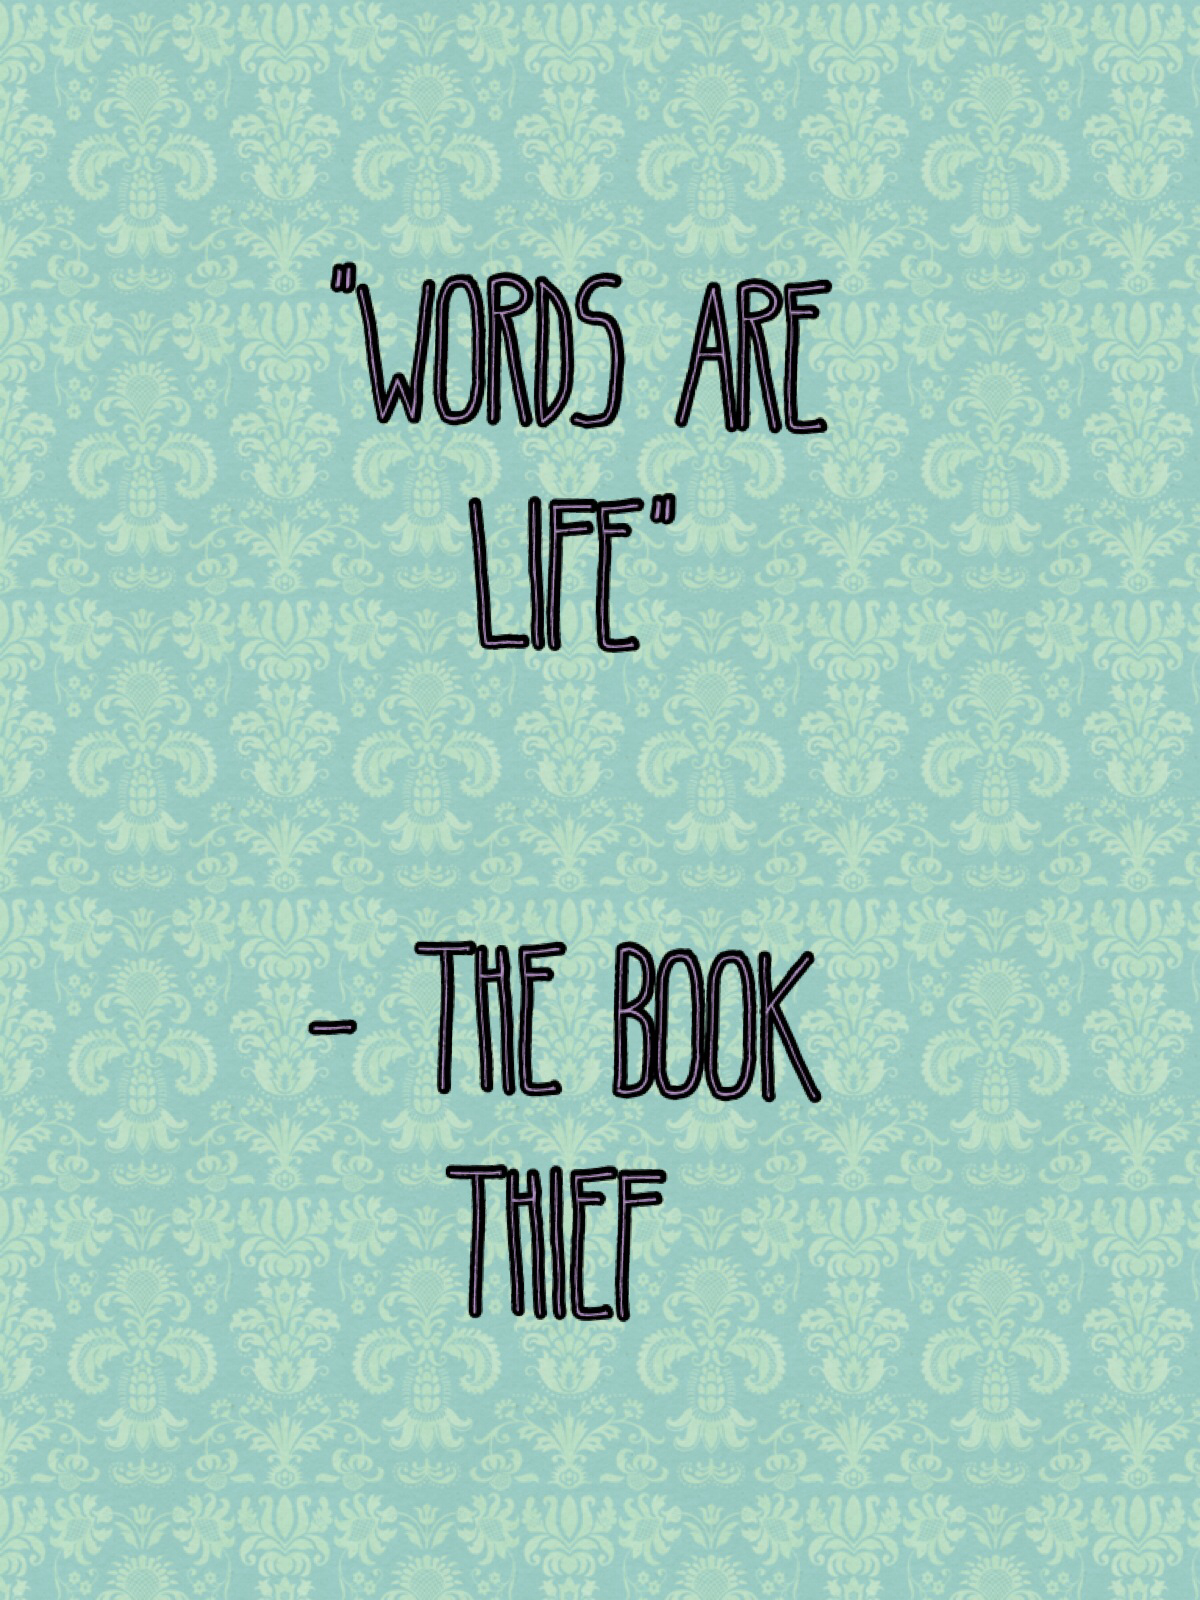 the book thief essay on power of words